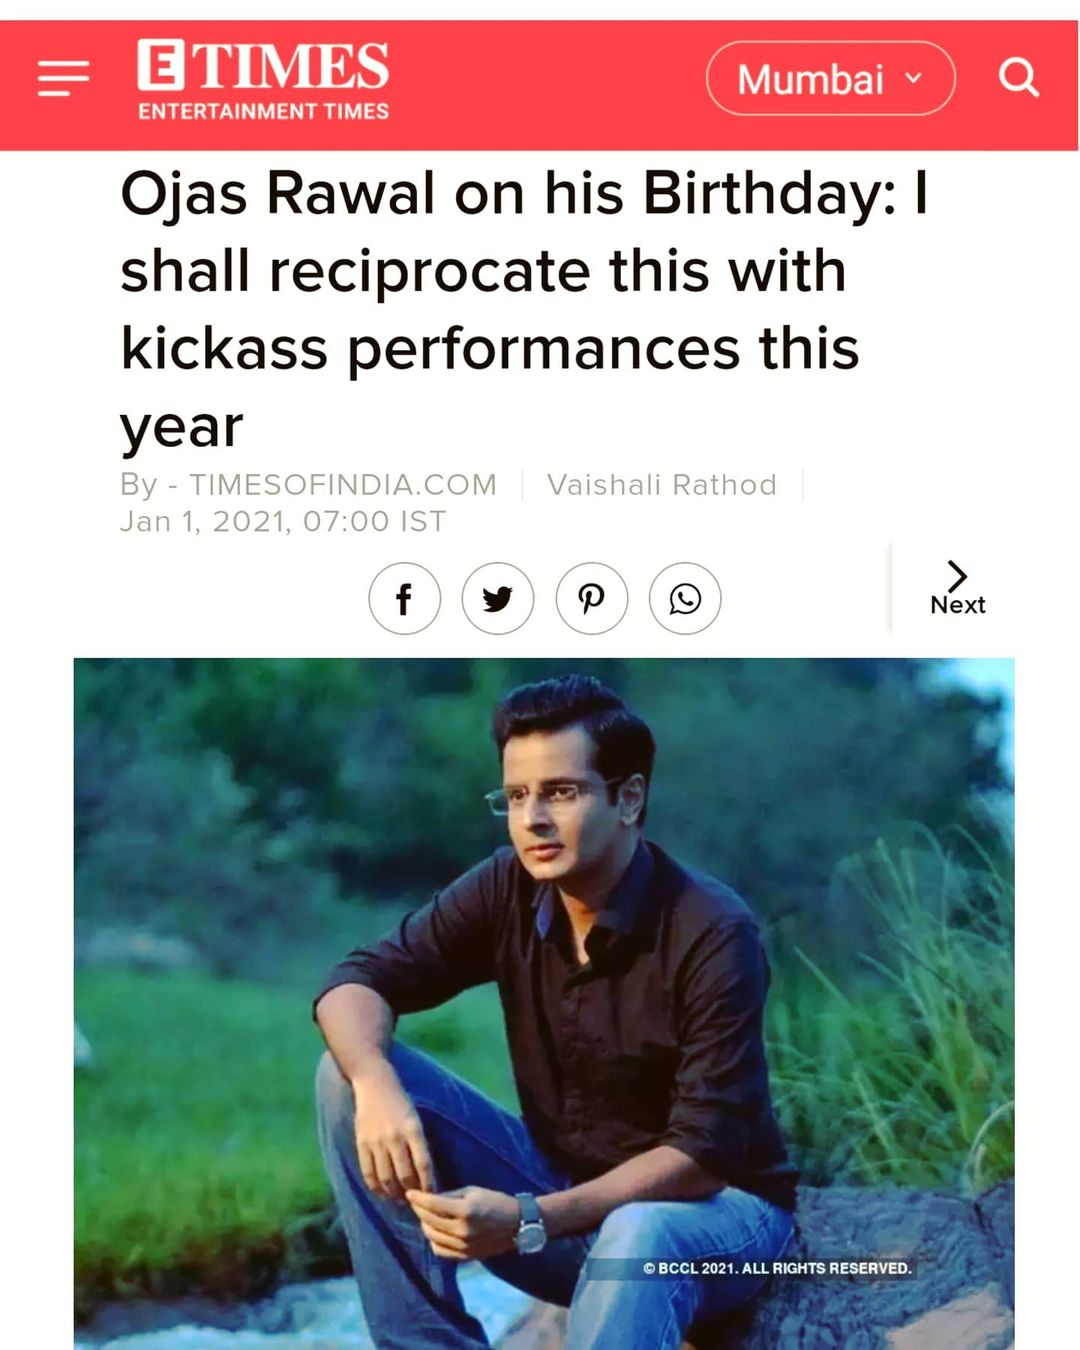 Ojas Rawal,  gujarati, film, upcoming, movie, cinema, actors, gujju, karsandas, michael, deekshajoshi, michaelchauhan, ojasrawal, chellodivas, films, movies, interview, talkshow, colors, shoot, tvshow, trailer, colorscinema, gujarat, promo, tv, television, weekend, entertainment, actor, showbiz